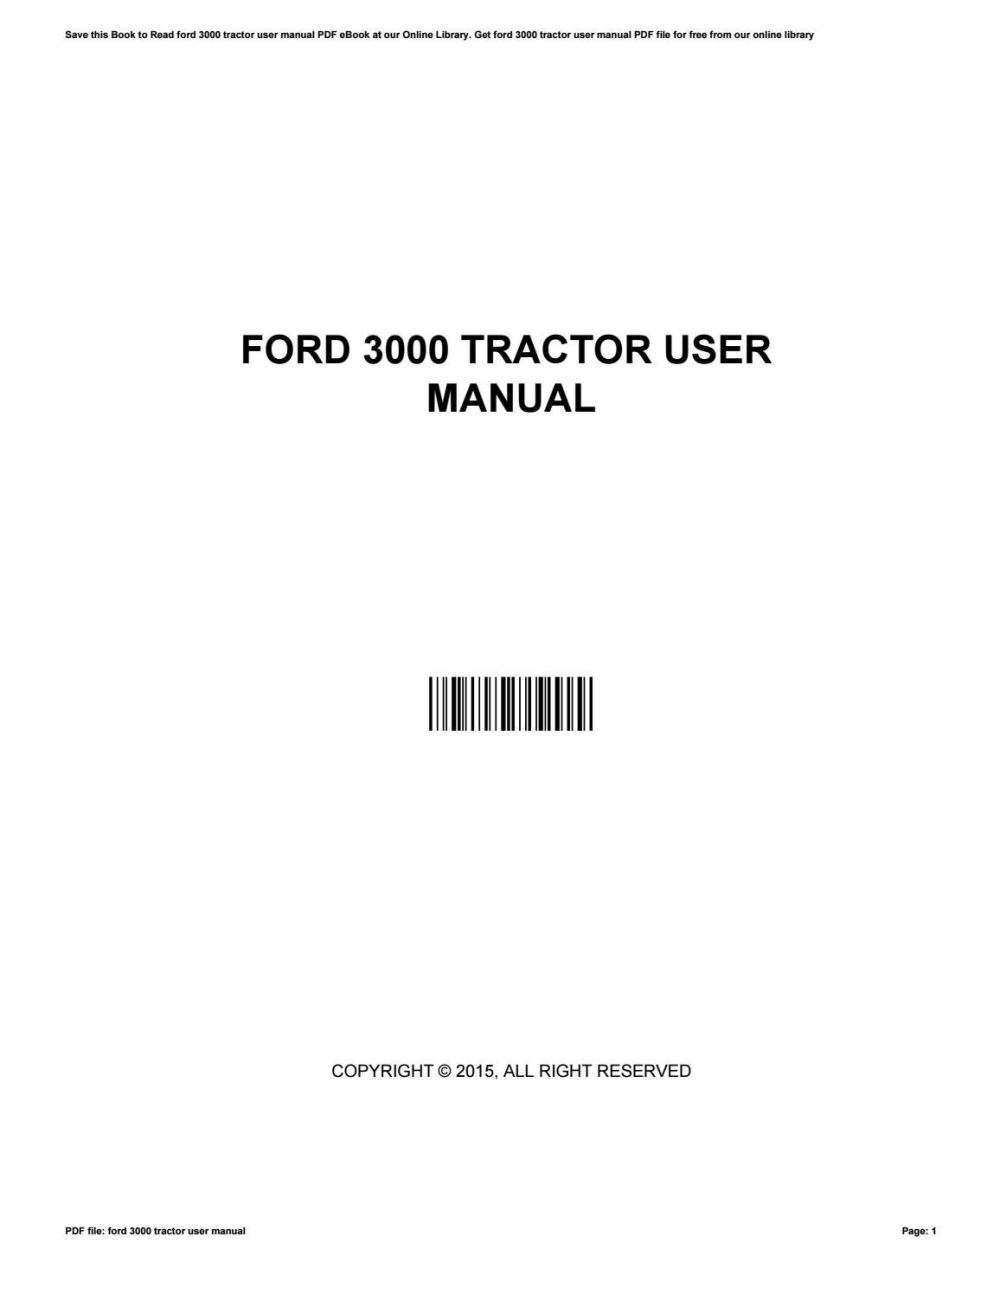 medium resolution of ford tractor user manual claytoncruz issuu jpg 1156x1496 ford 3000 tractor manual